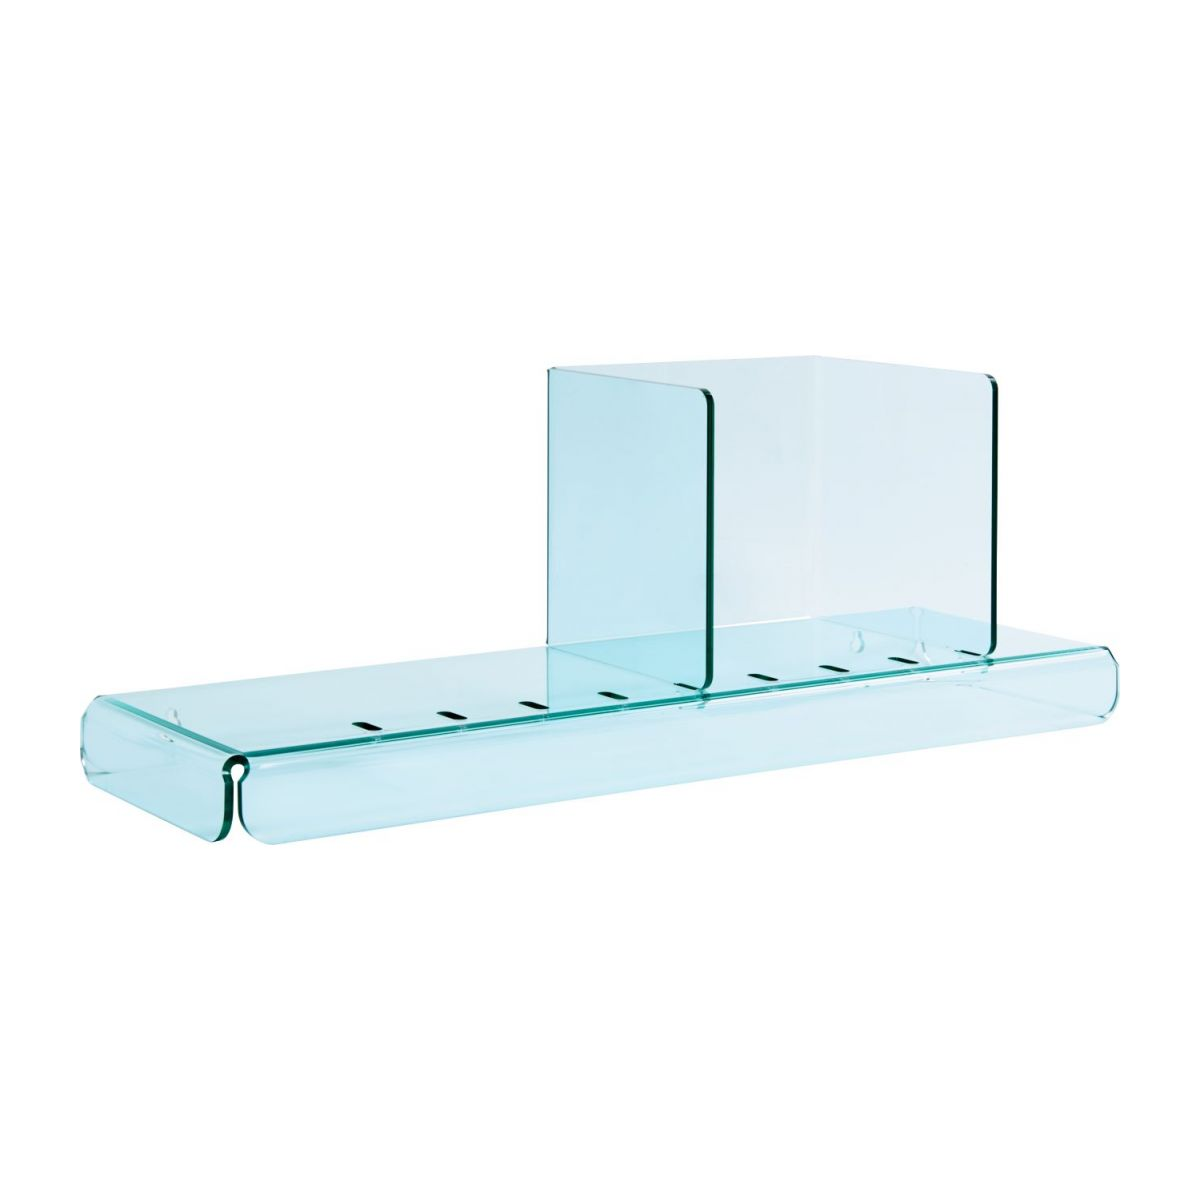 Shelf made of acrylic, transparent n°1